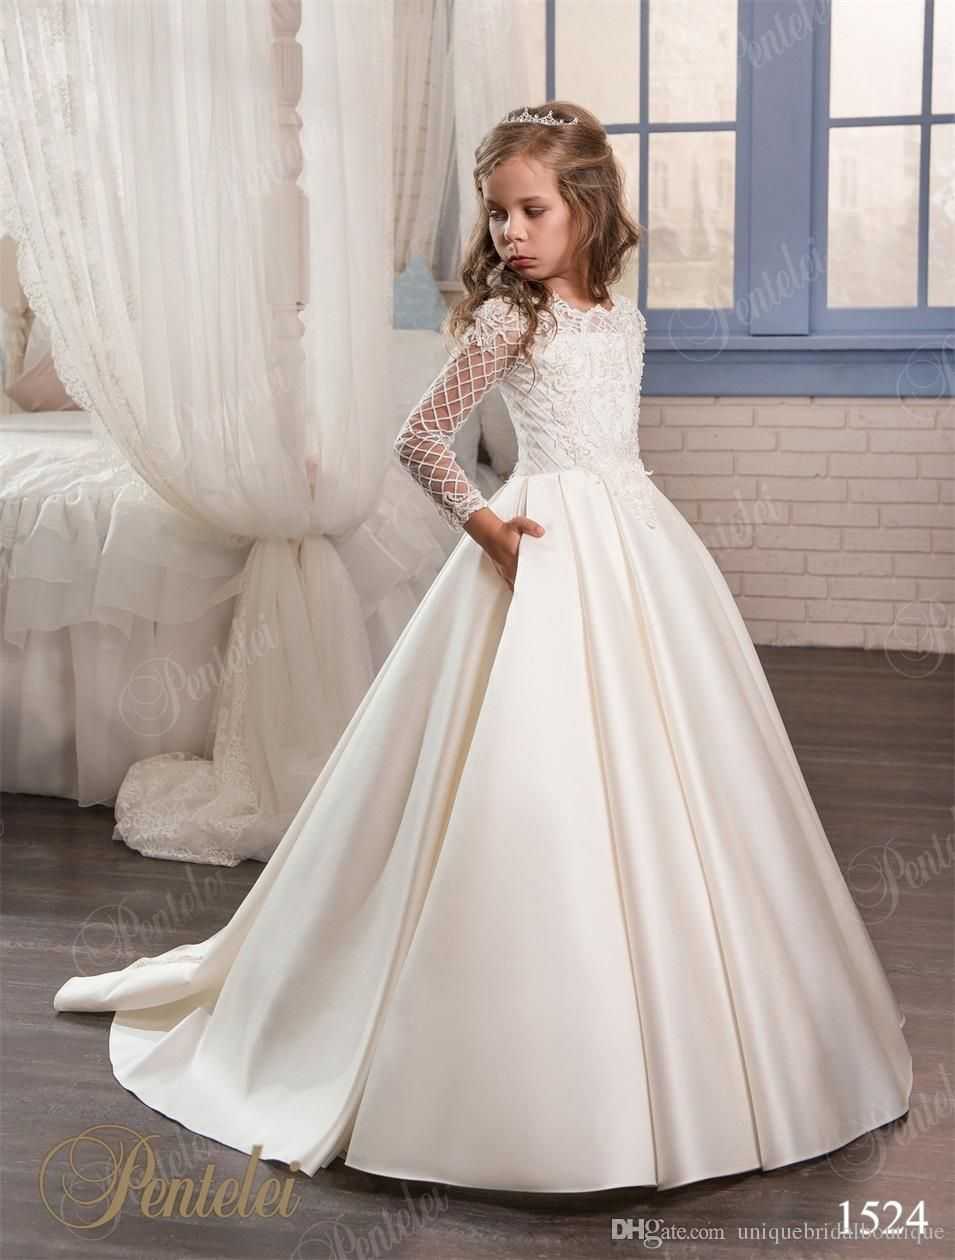 Wedding dresses for little girls 2017 pentelei cheap with for Girls dresses for a wedding